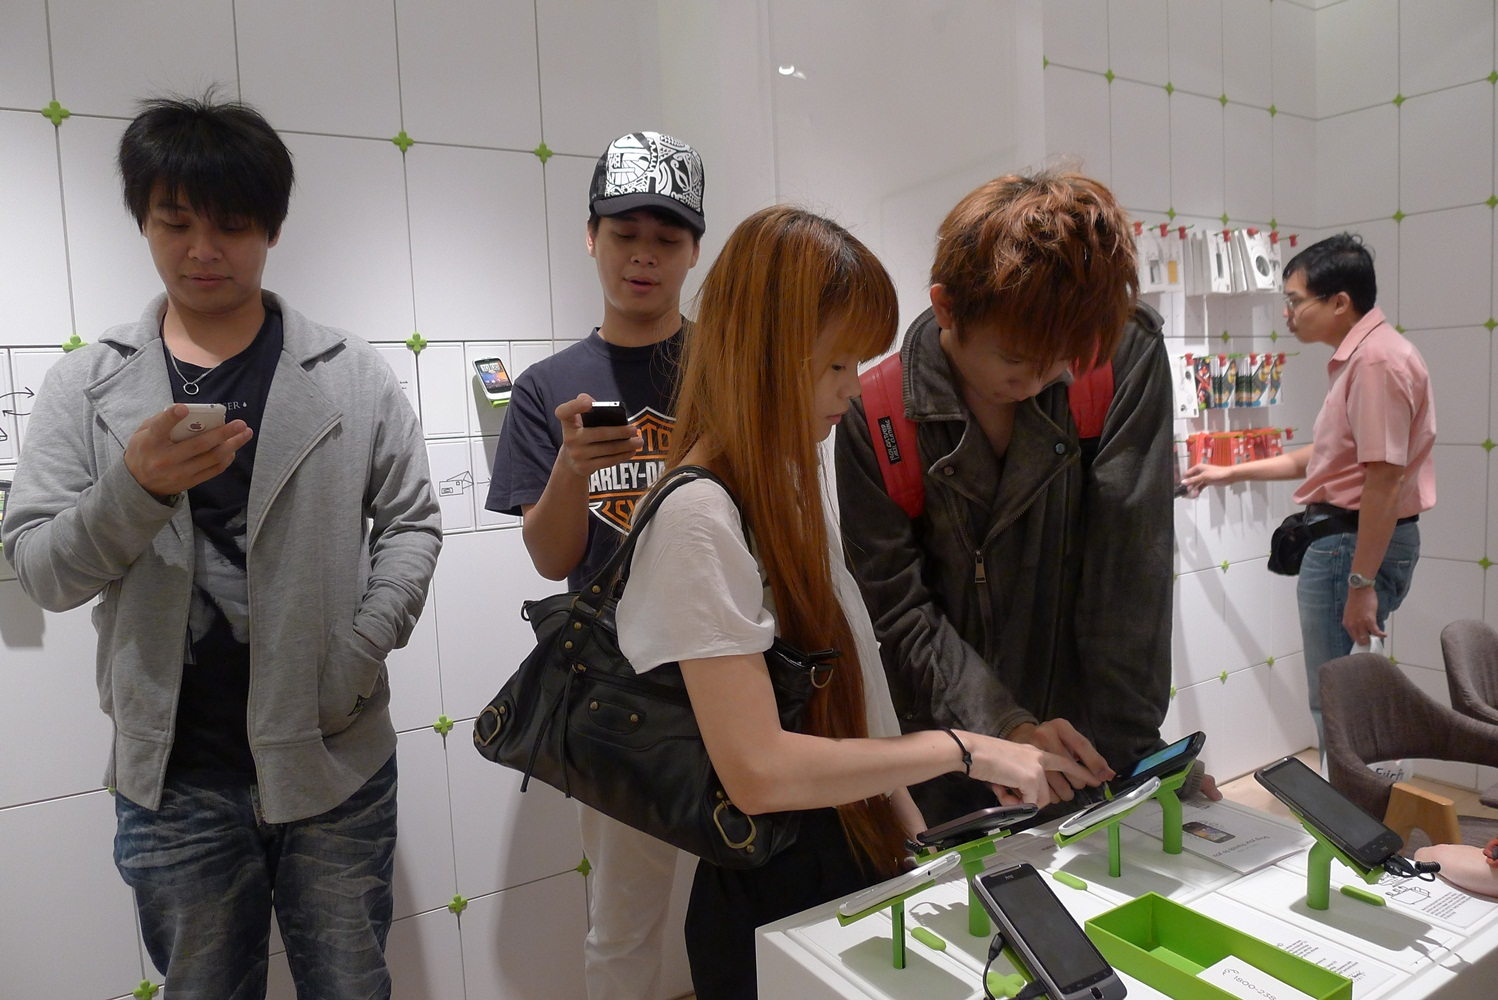 HTC to triple number of retail outlets in China push